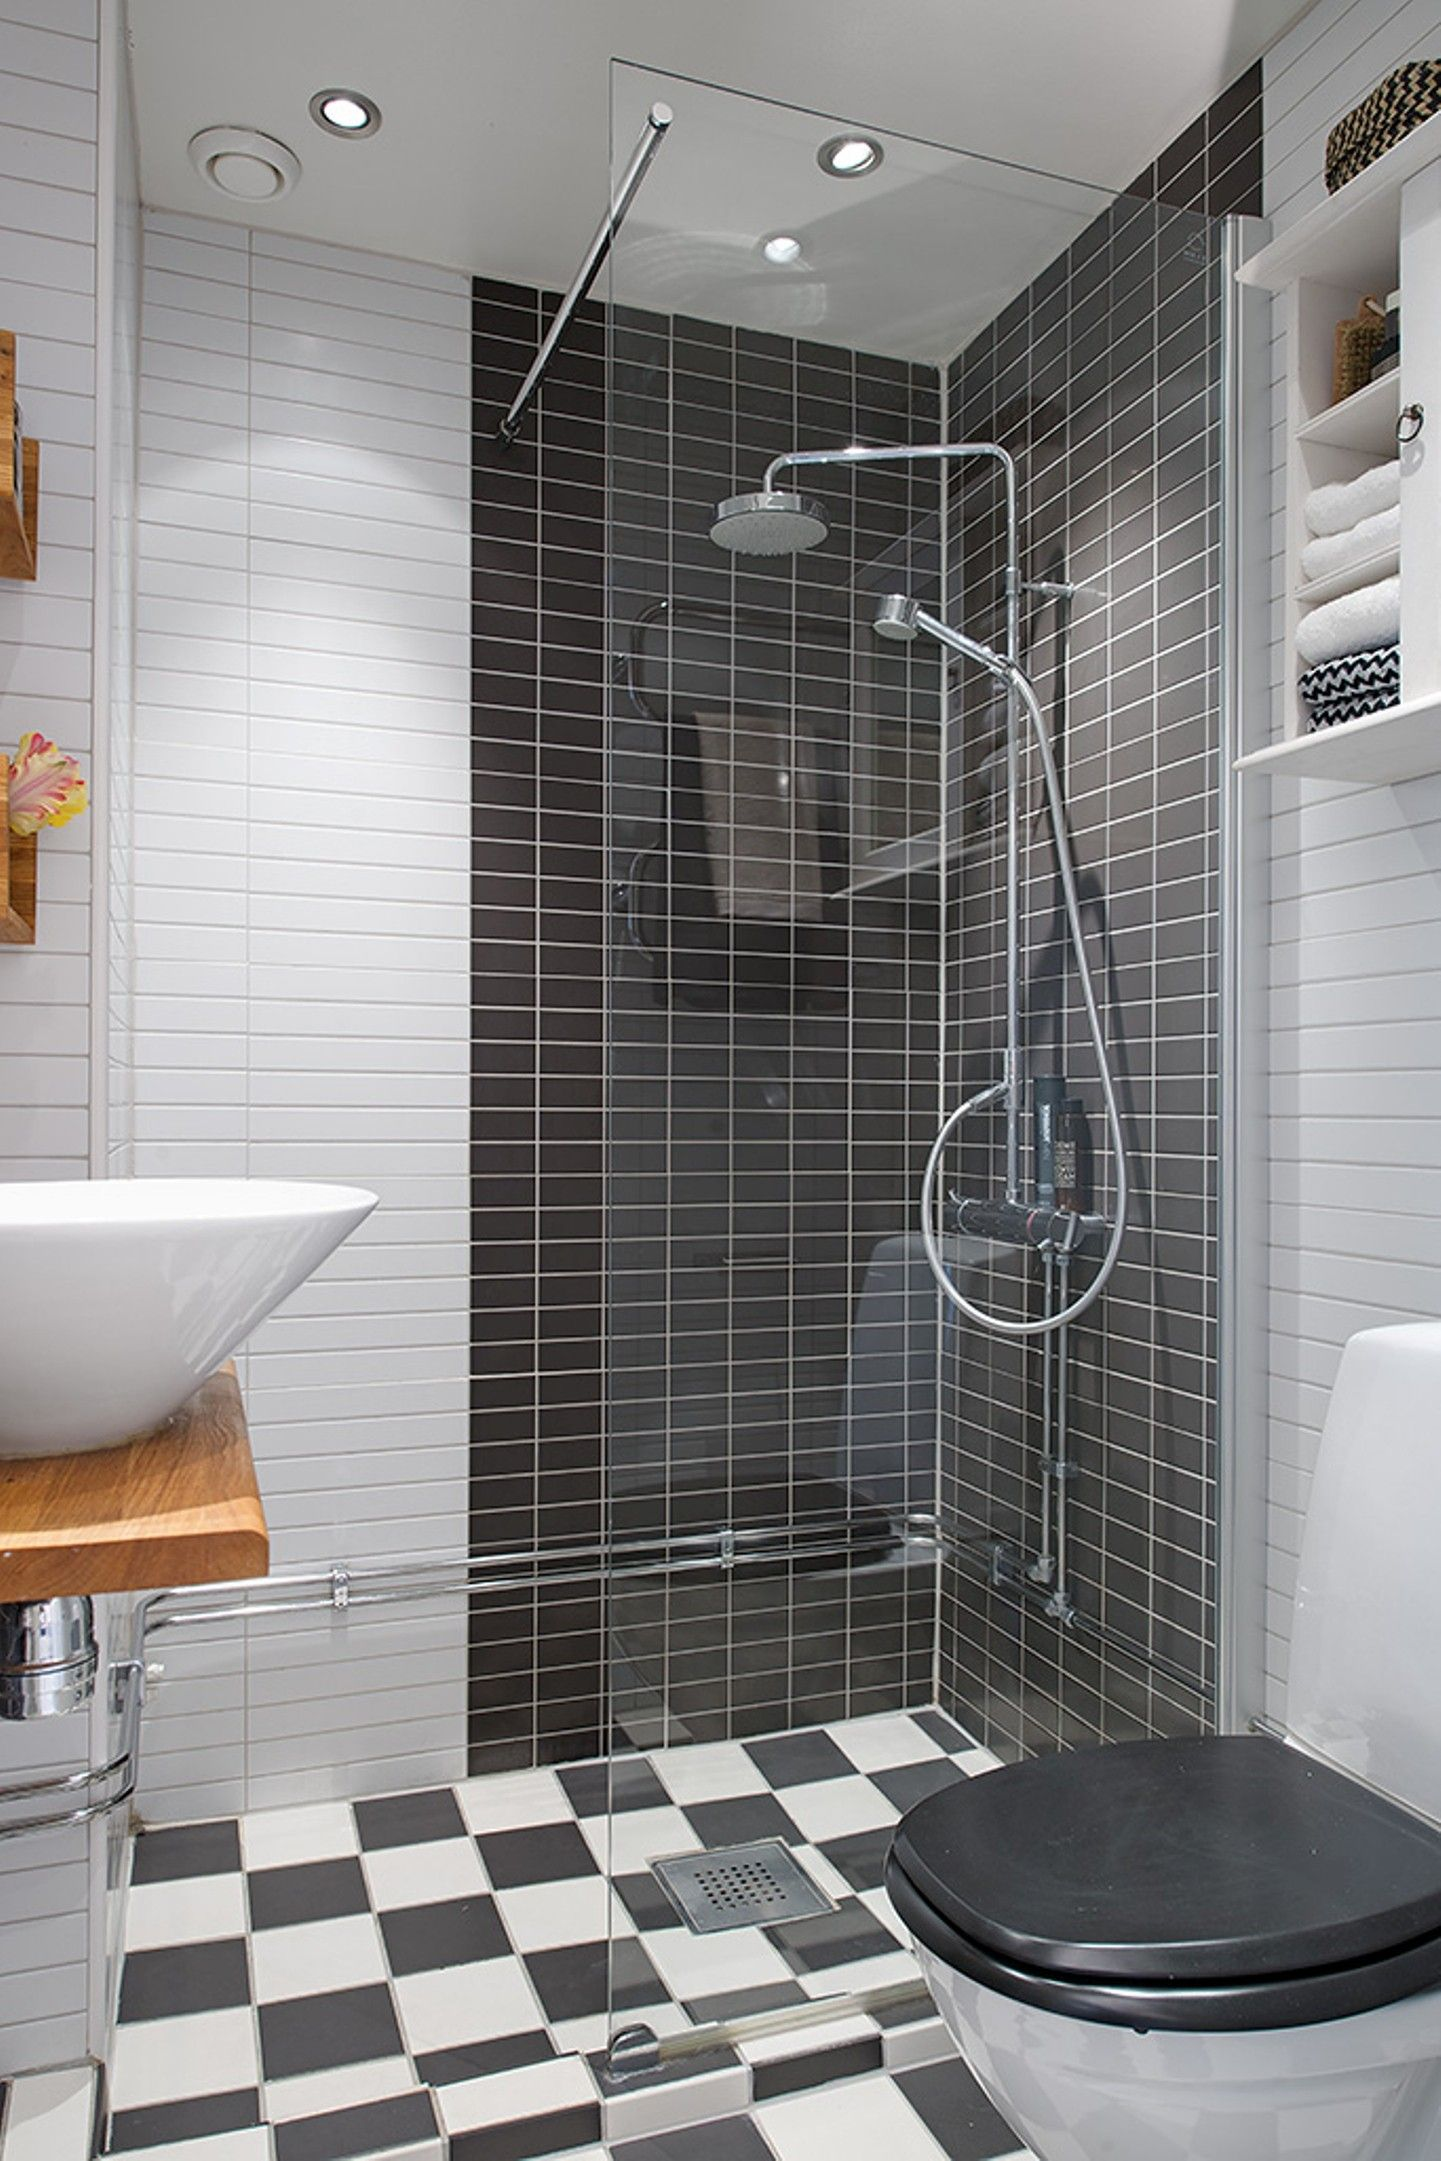 bathroom-interior-ideas-modern-shower-style-with-black-and-white ... for small apartment bathroom color ideas  111bof